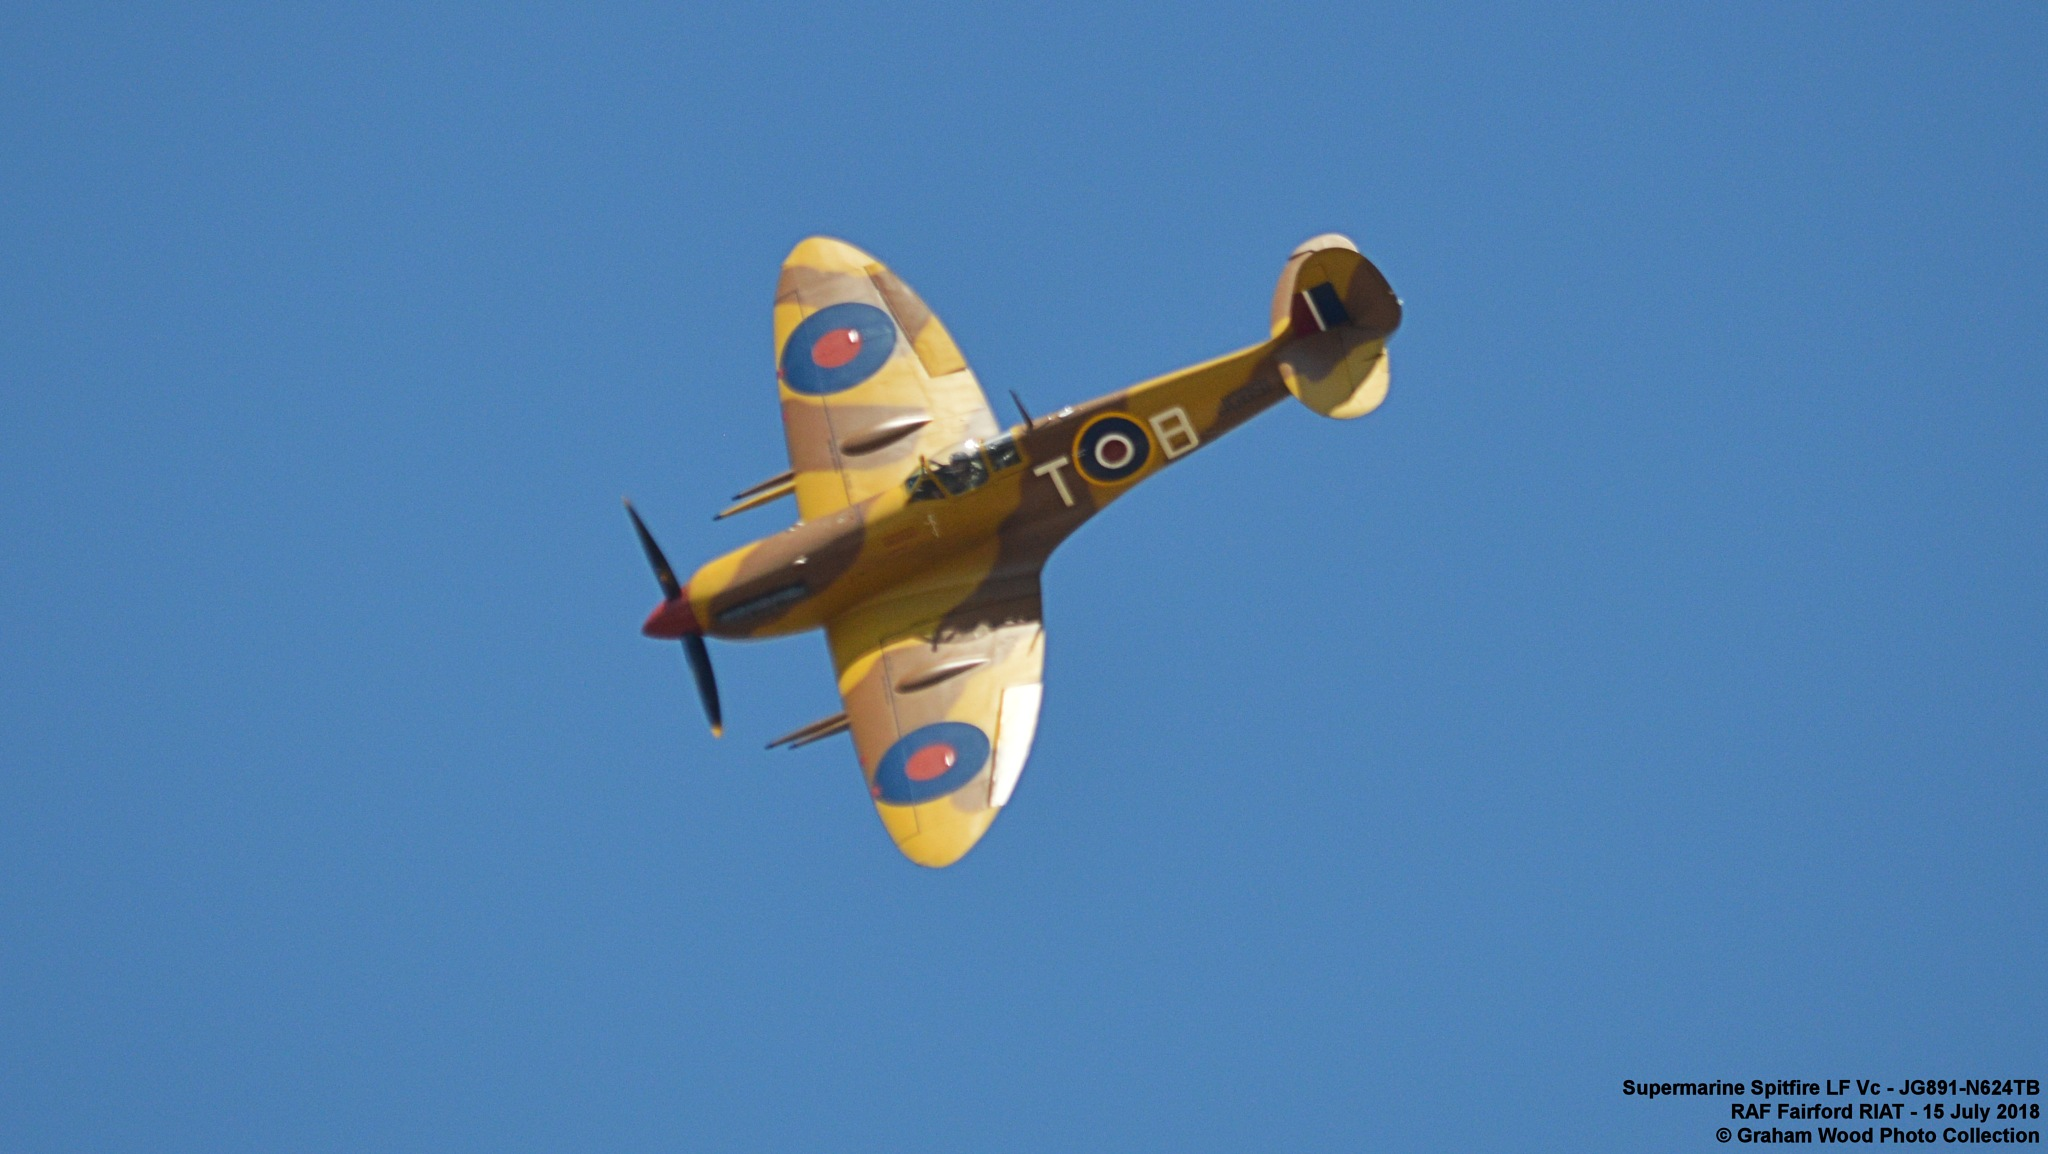 Supermarine Spitfire LF Vc - JG891-N624TB  by Graham Wood Photo Collection